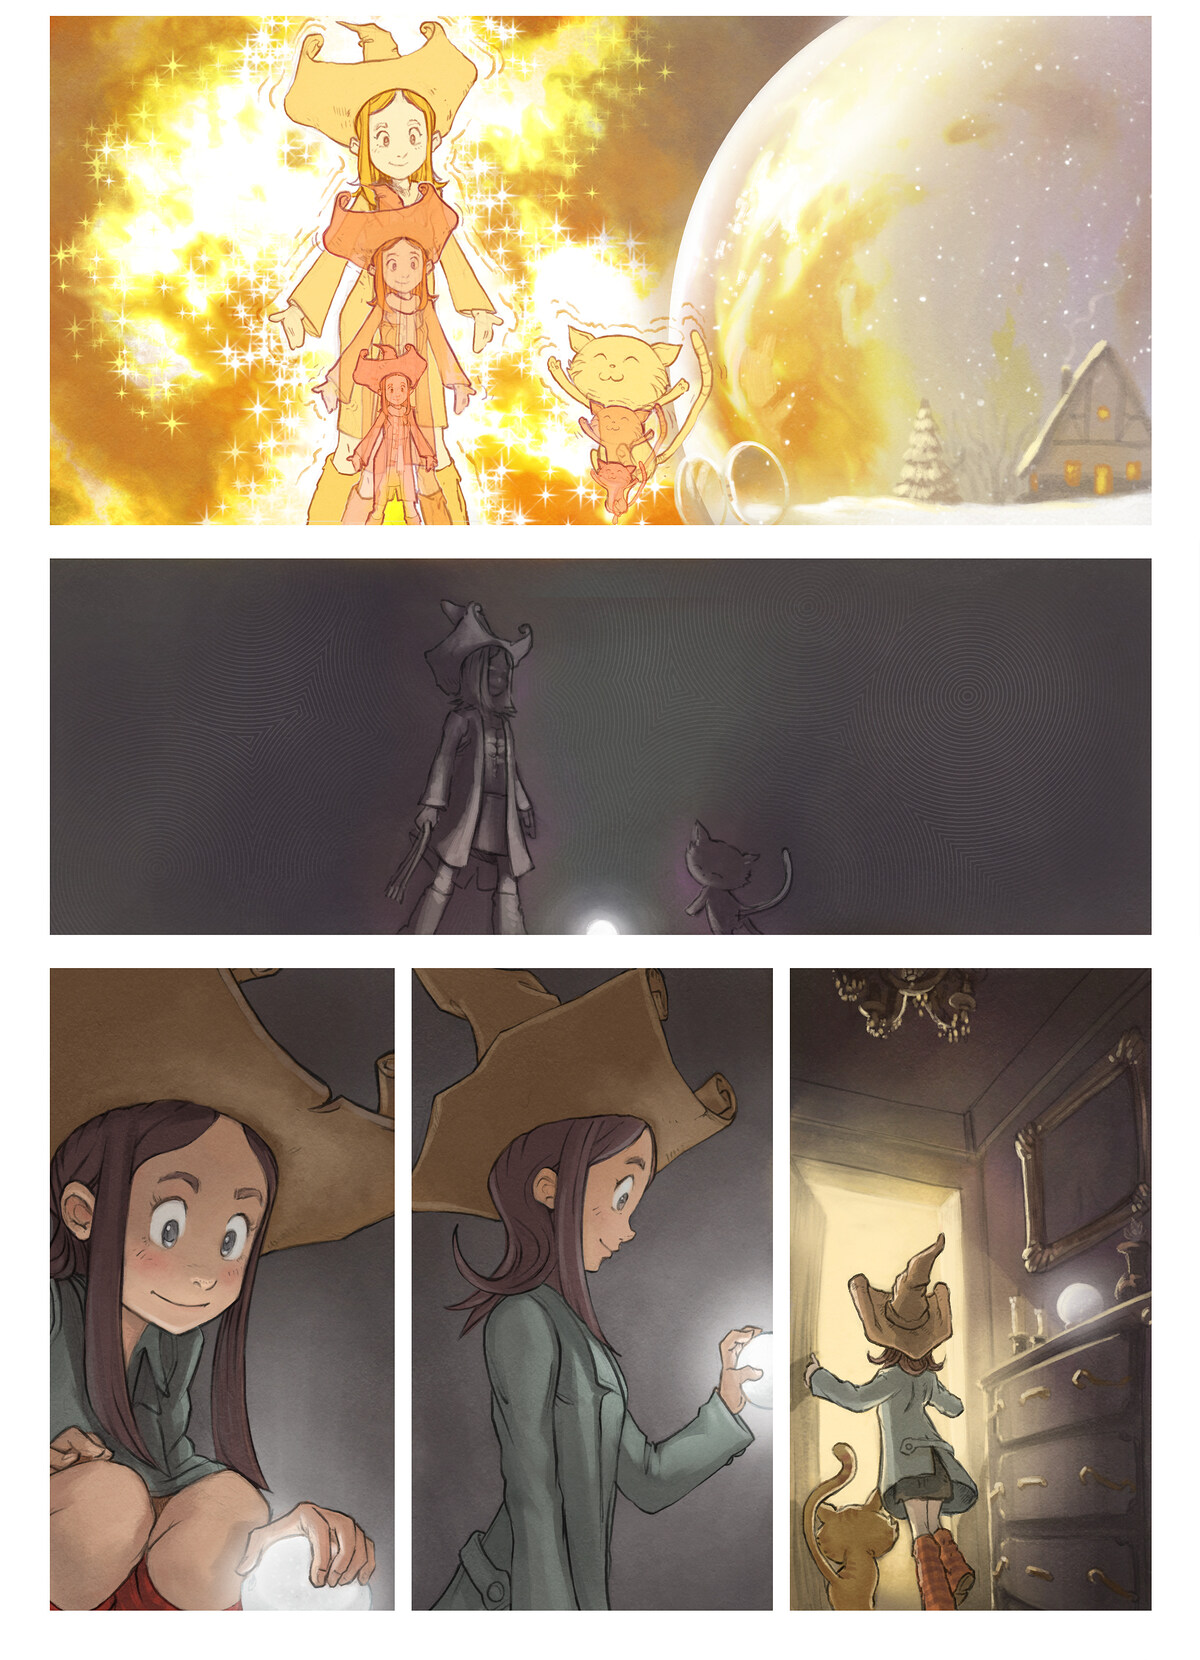 A webcomic page of Pepper&Carrot, Tập 5 [vi], trang 3